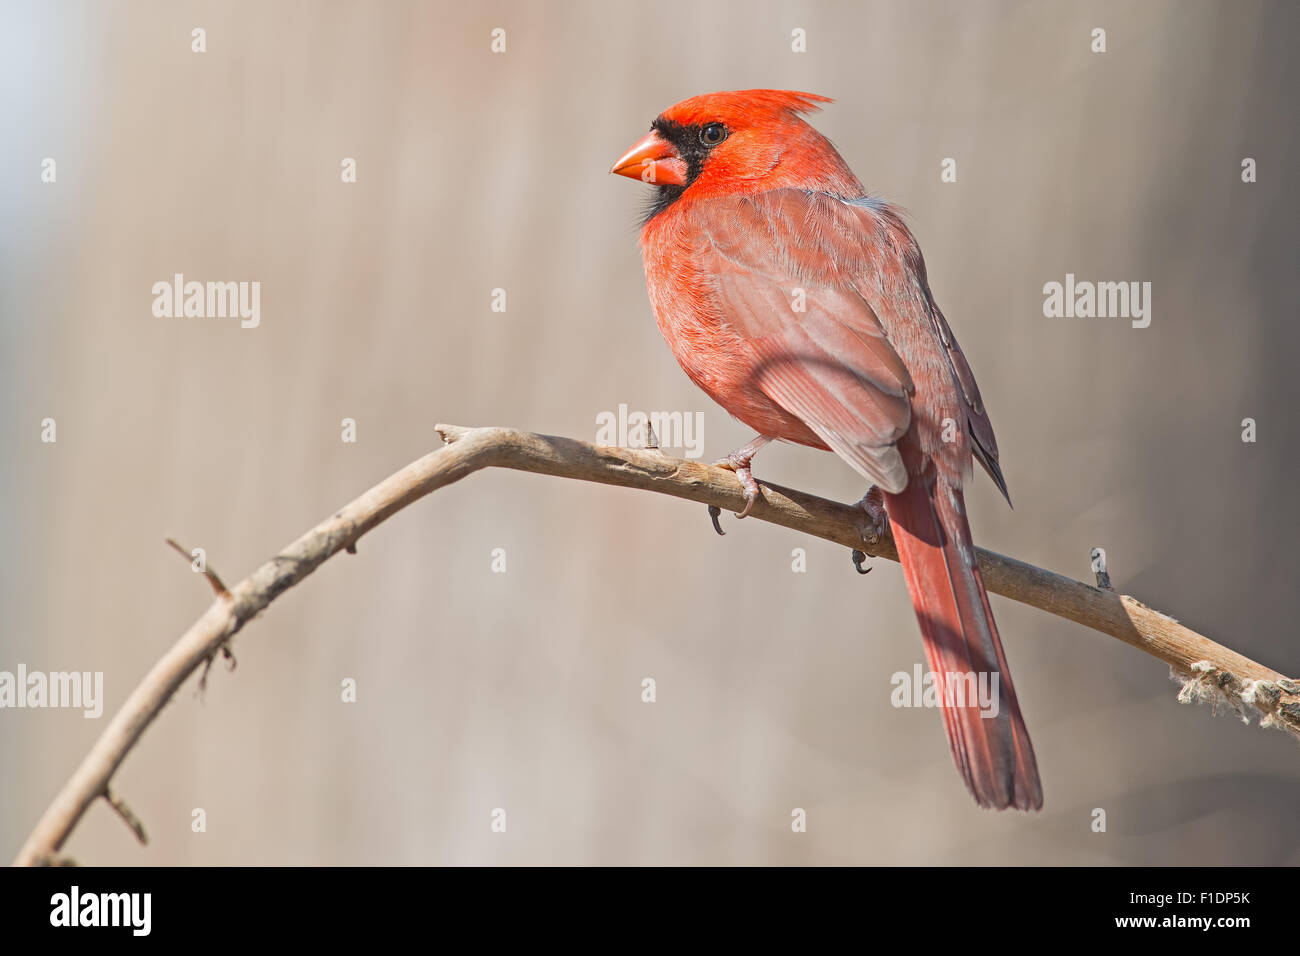 Male Northern Cardinal sitting on a Branch - Stock Image